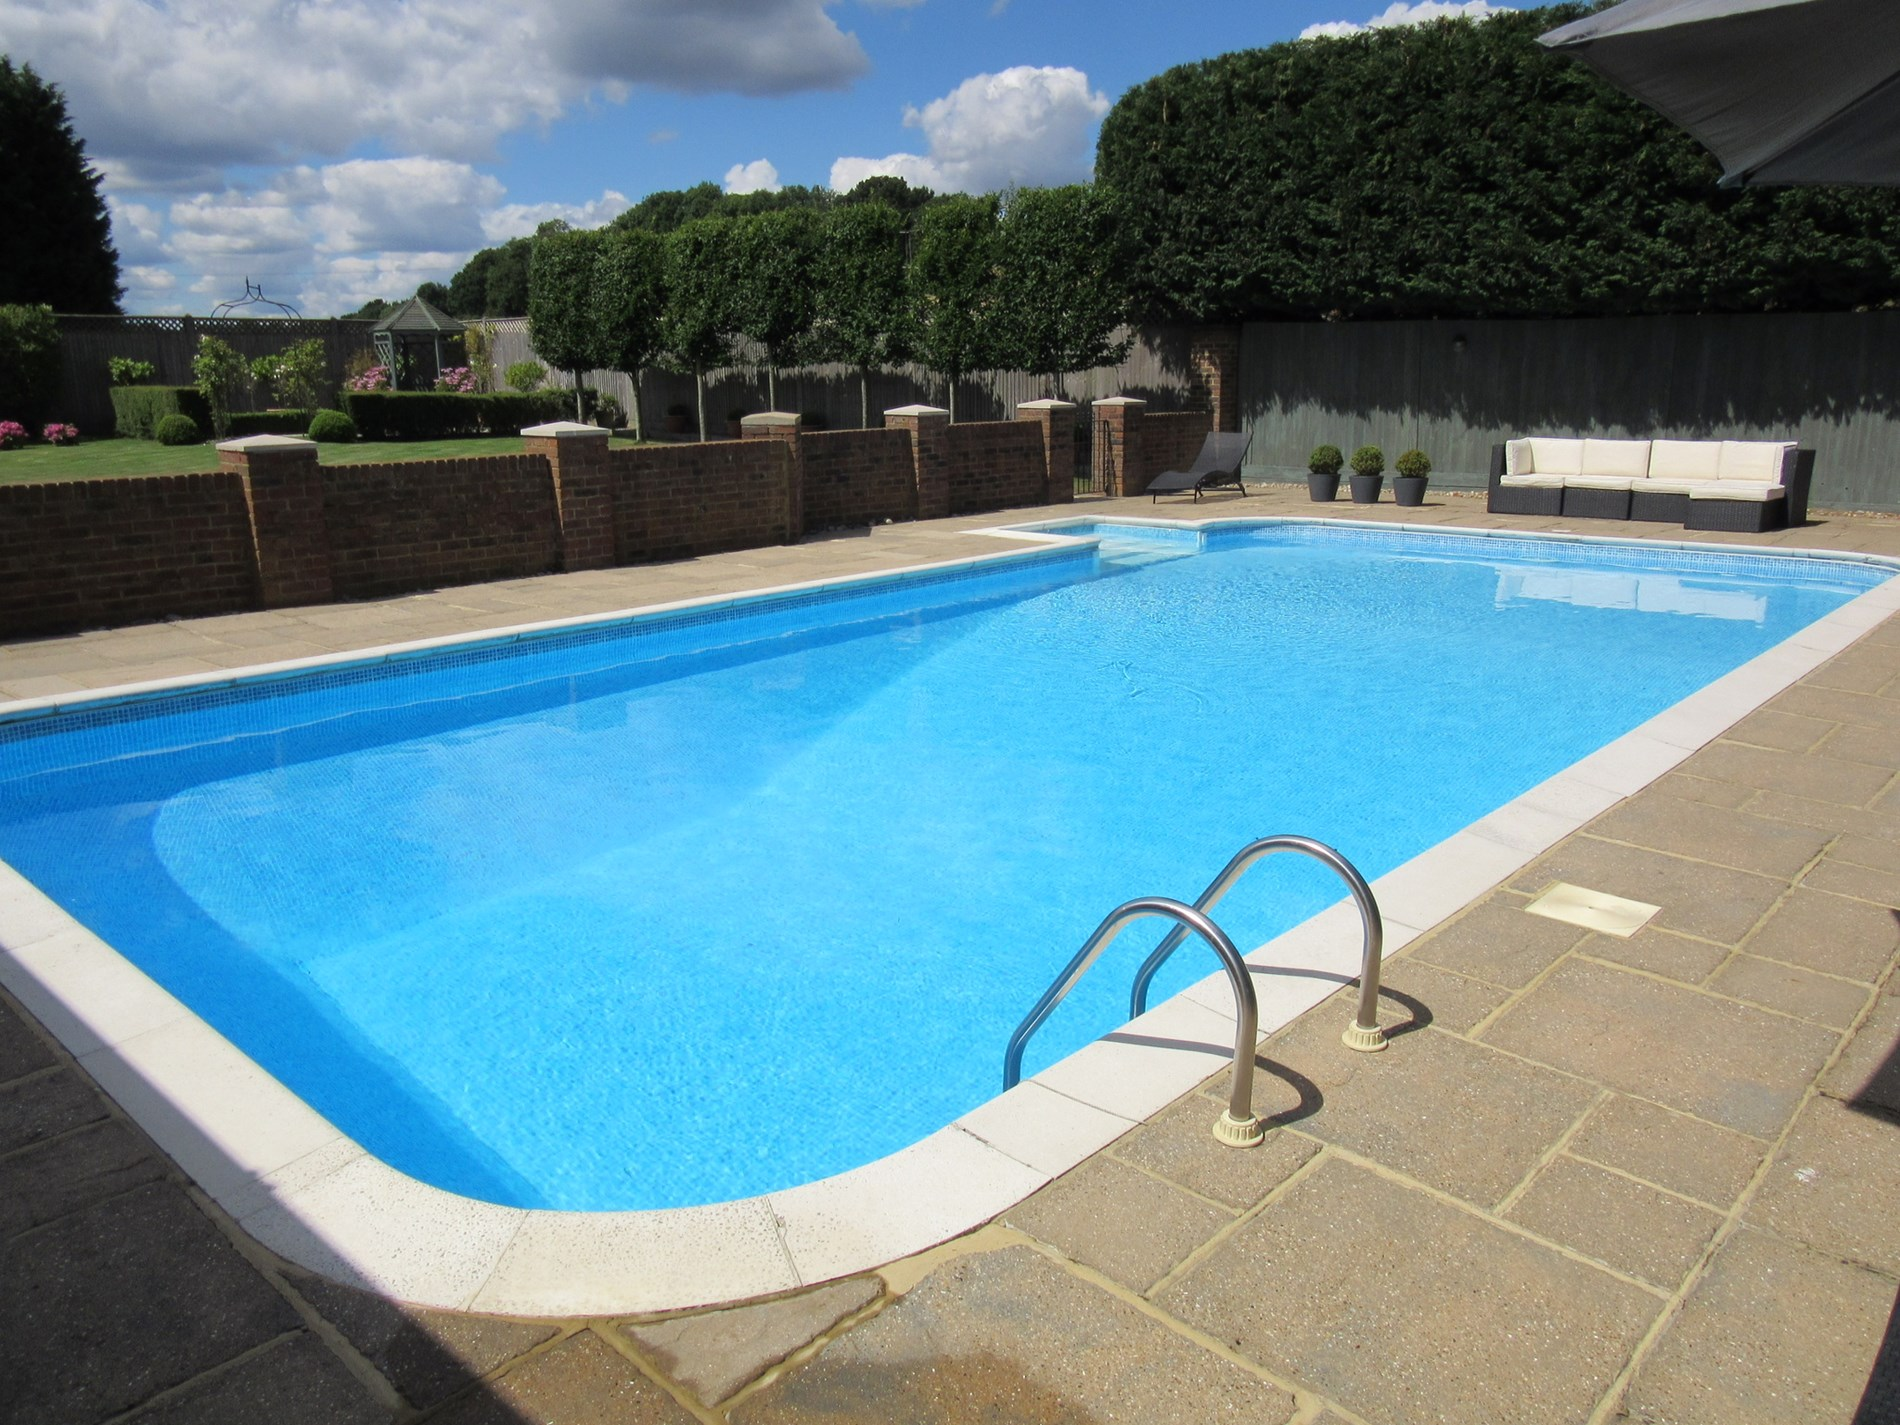 Relax and unwind by the heated pool